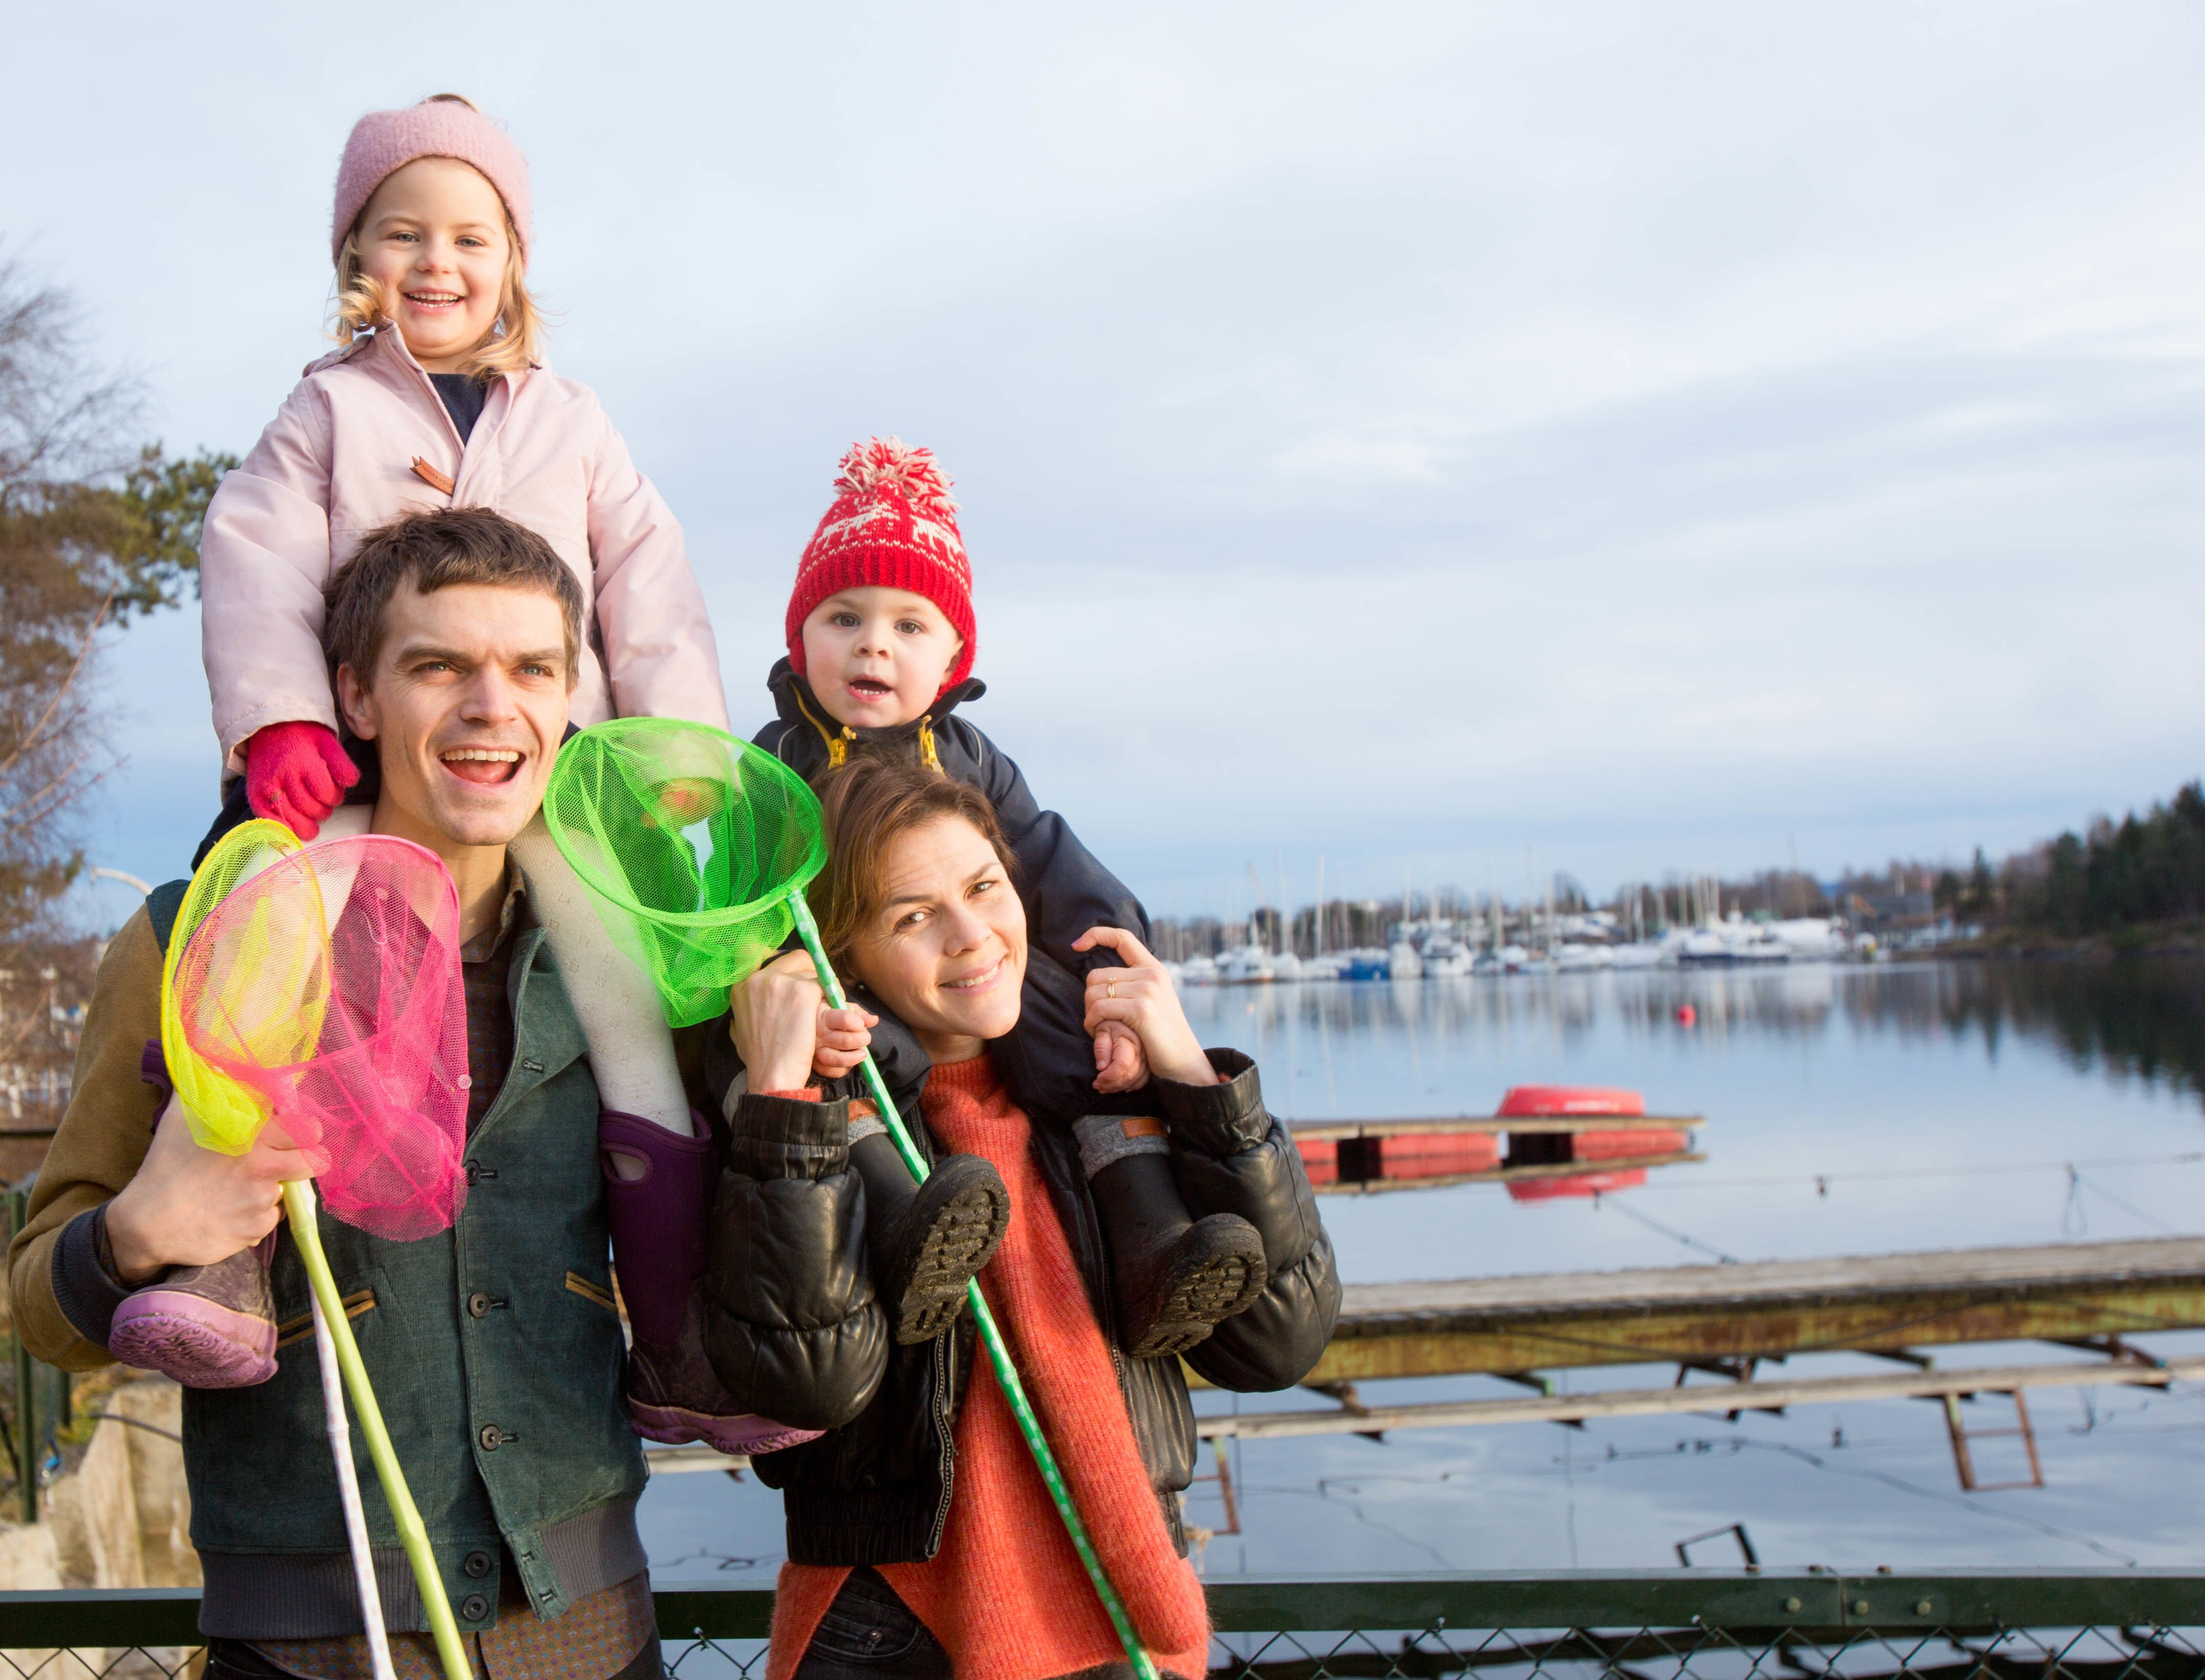 Simon and Julie Irgens with two of their children in Oslo, Norway. They have benefited from generous government parental